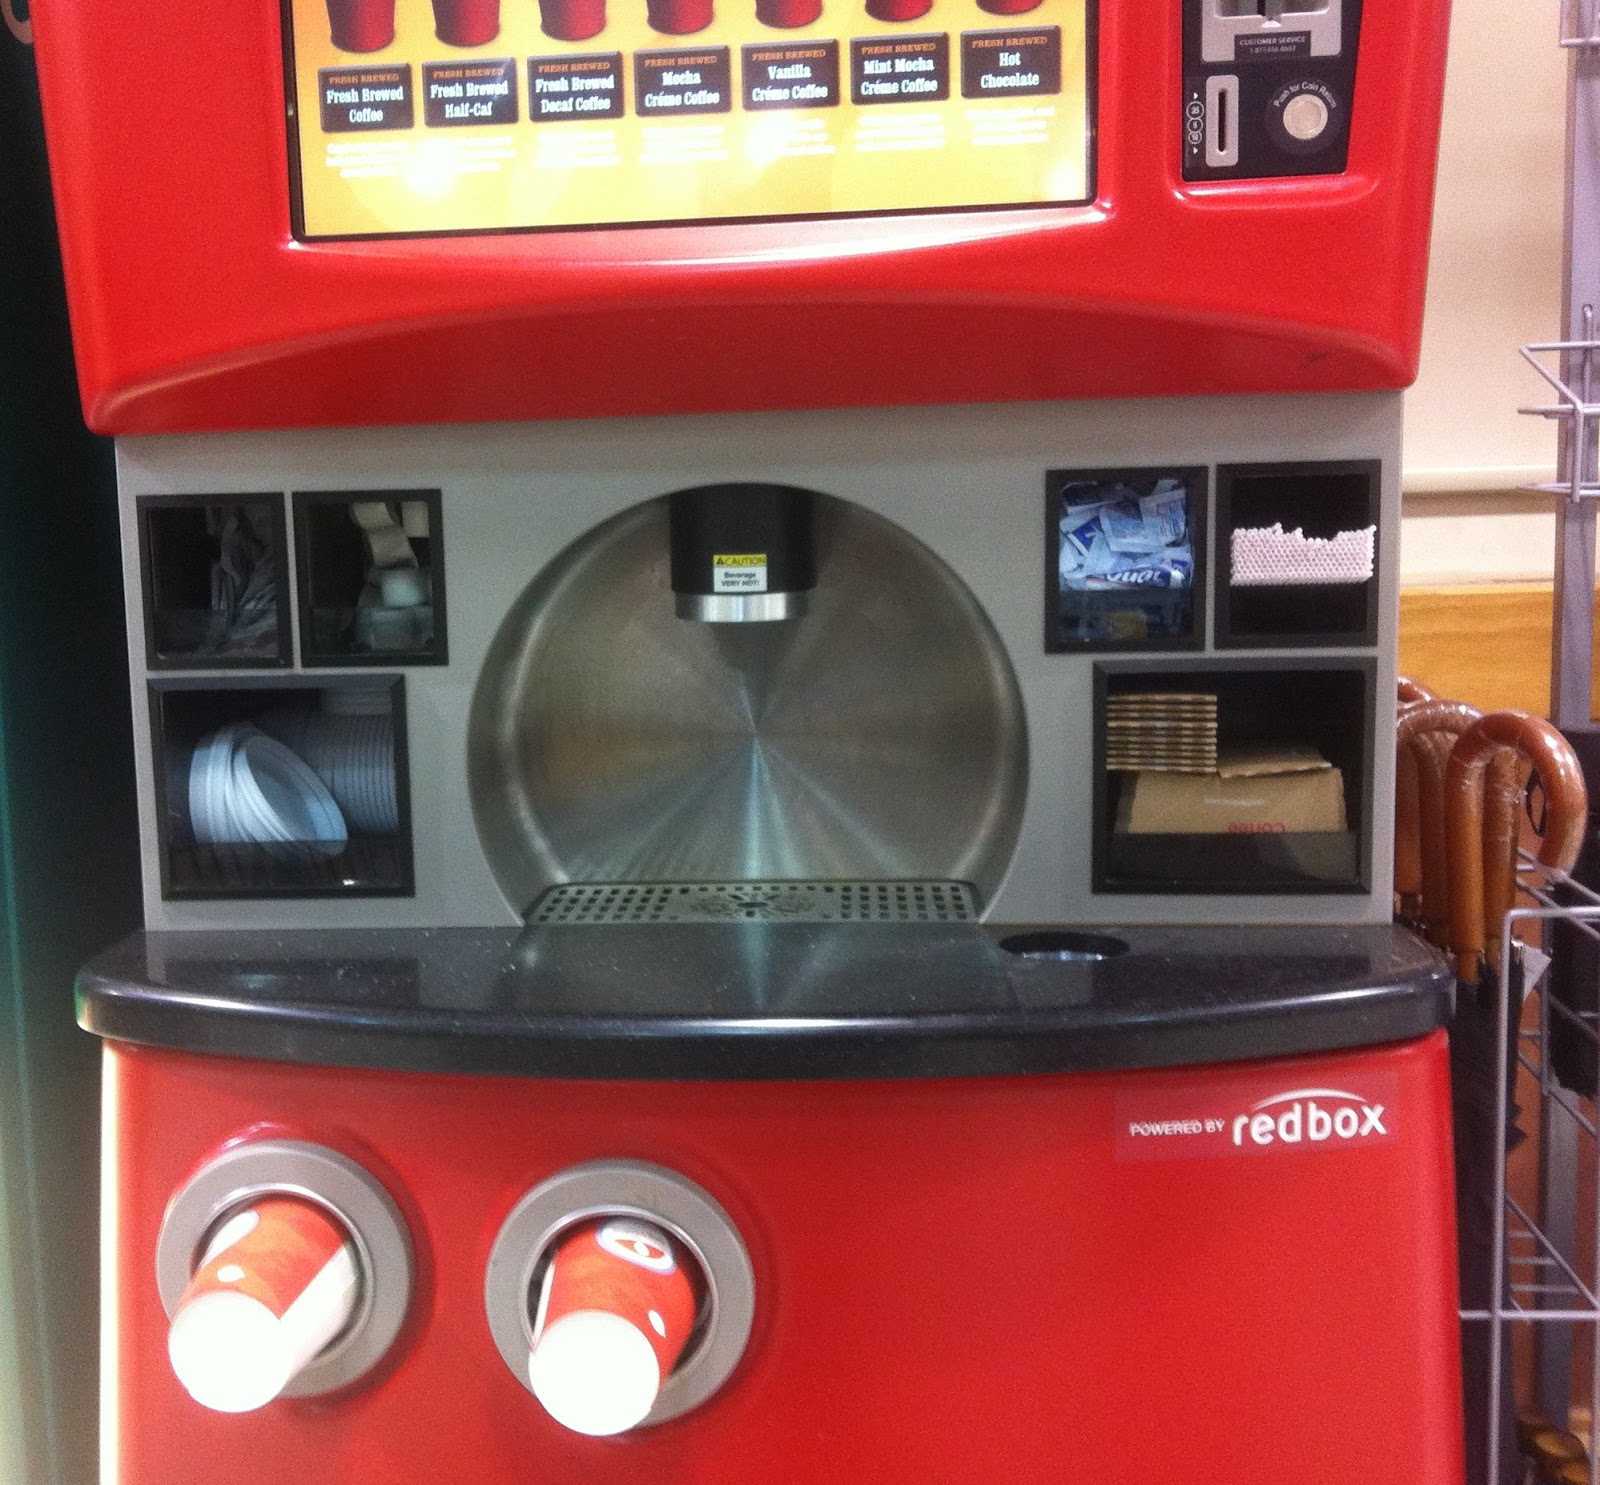 your next cup of coffee brewed by redbox � geekwire